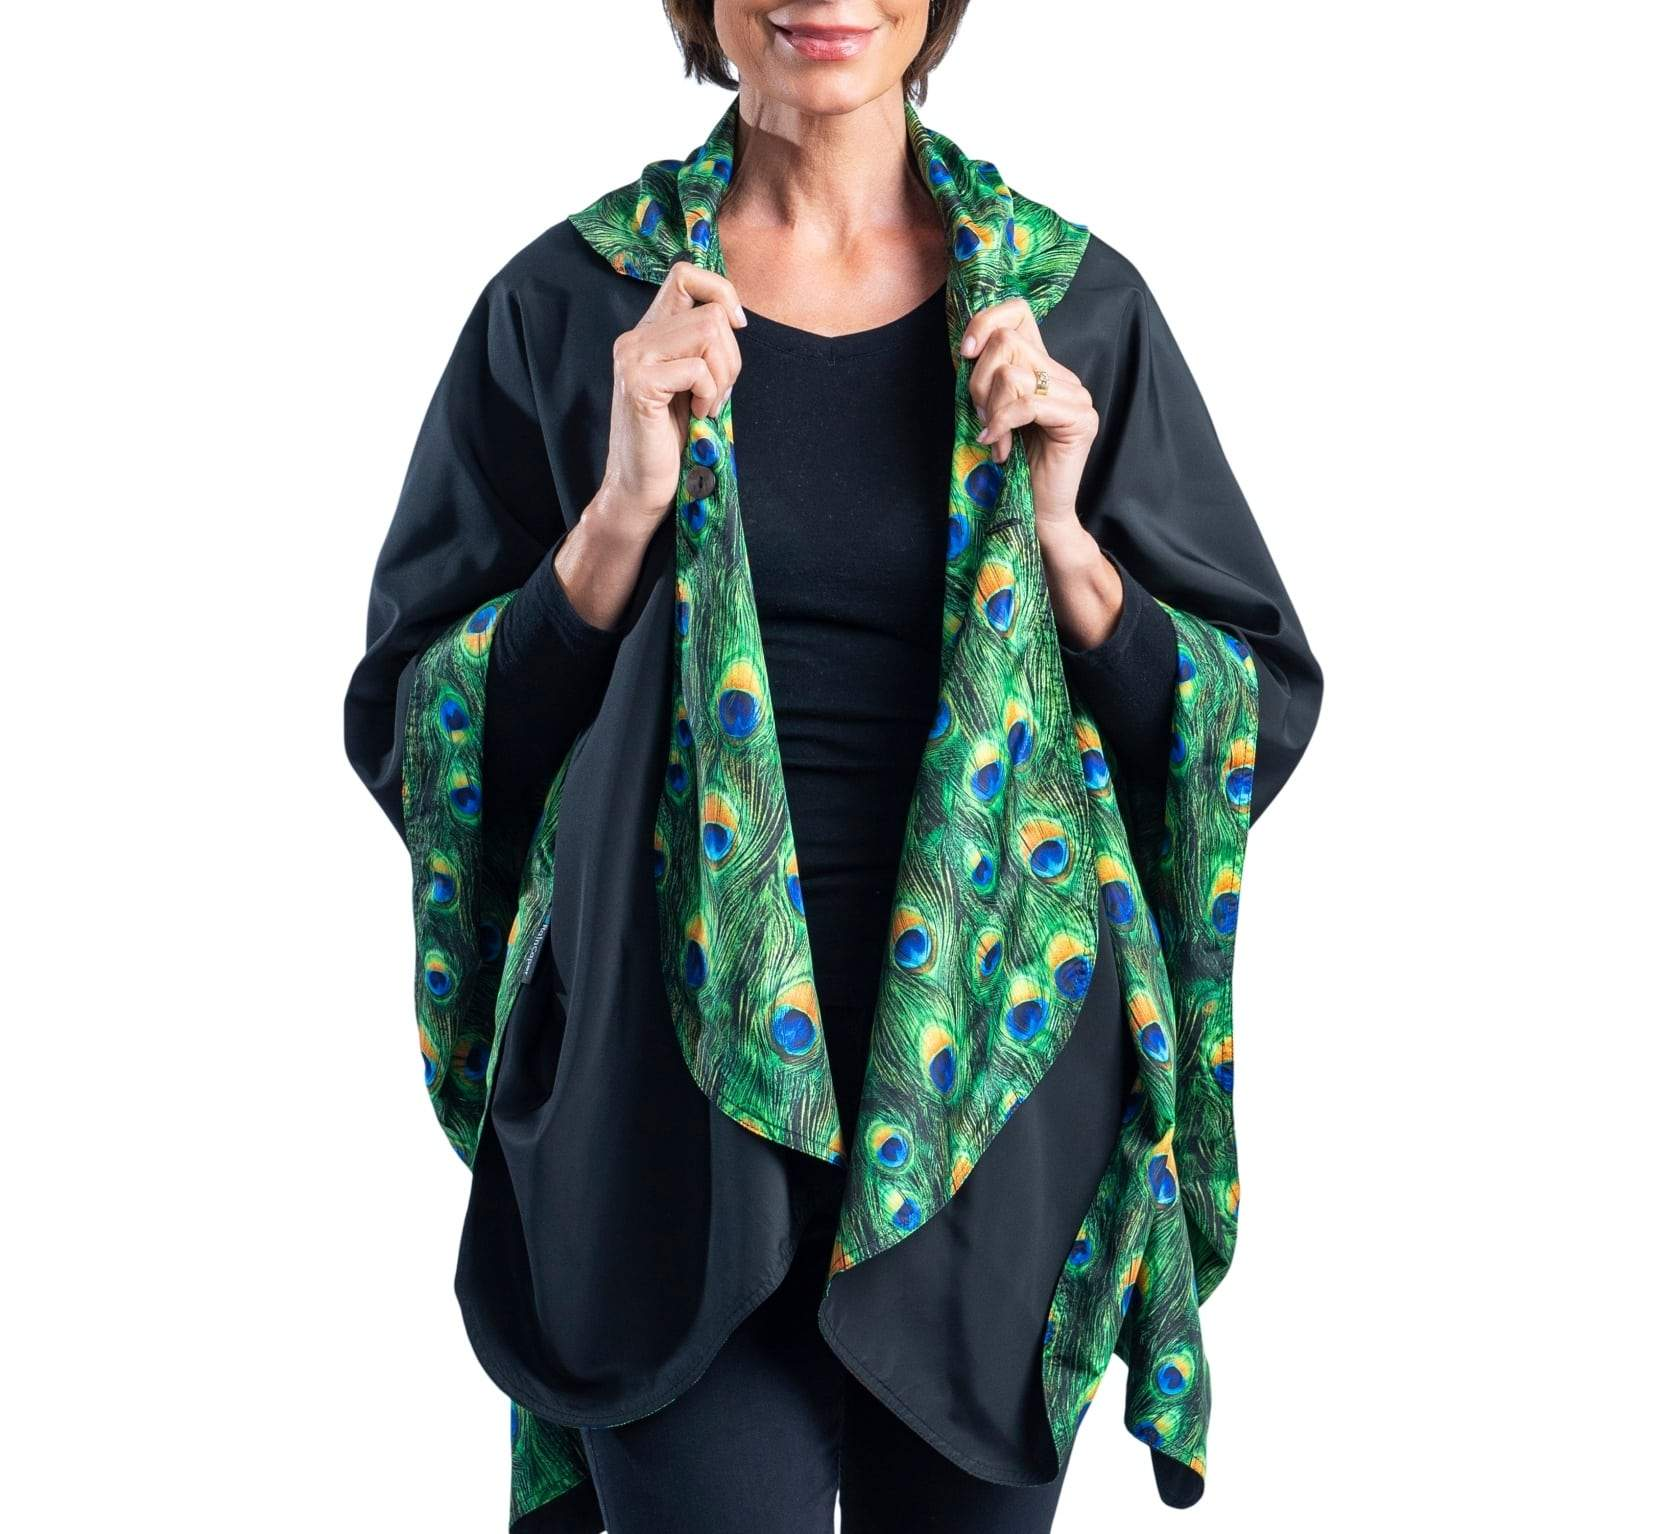 RainCaper Black & Peacock Travel Cape & Womens Rain Coat